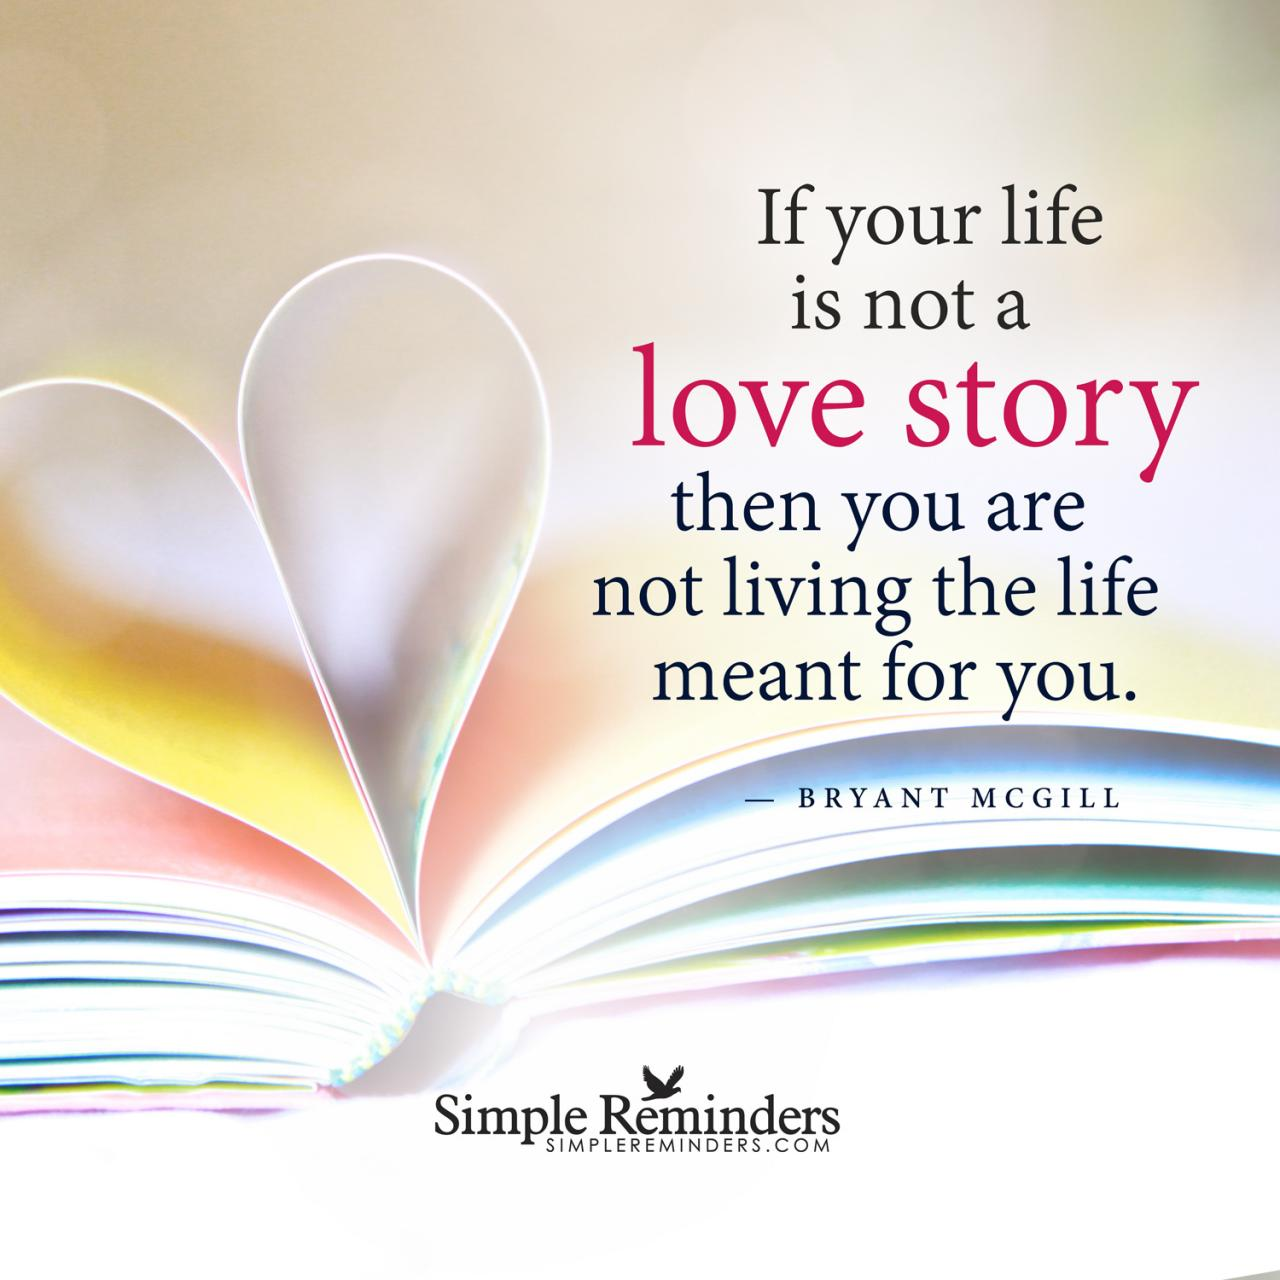 If Your Life Is Not A Love Story Then You Are Not Living The Life Meant For You